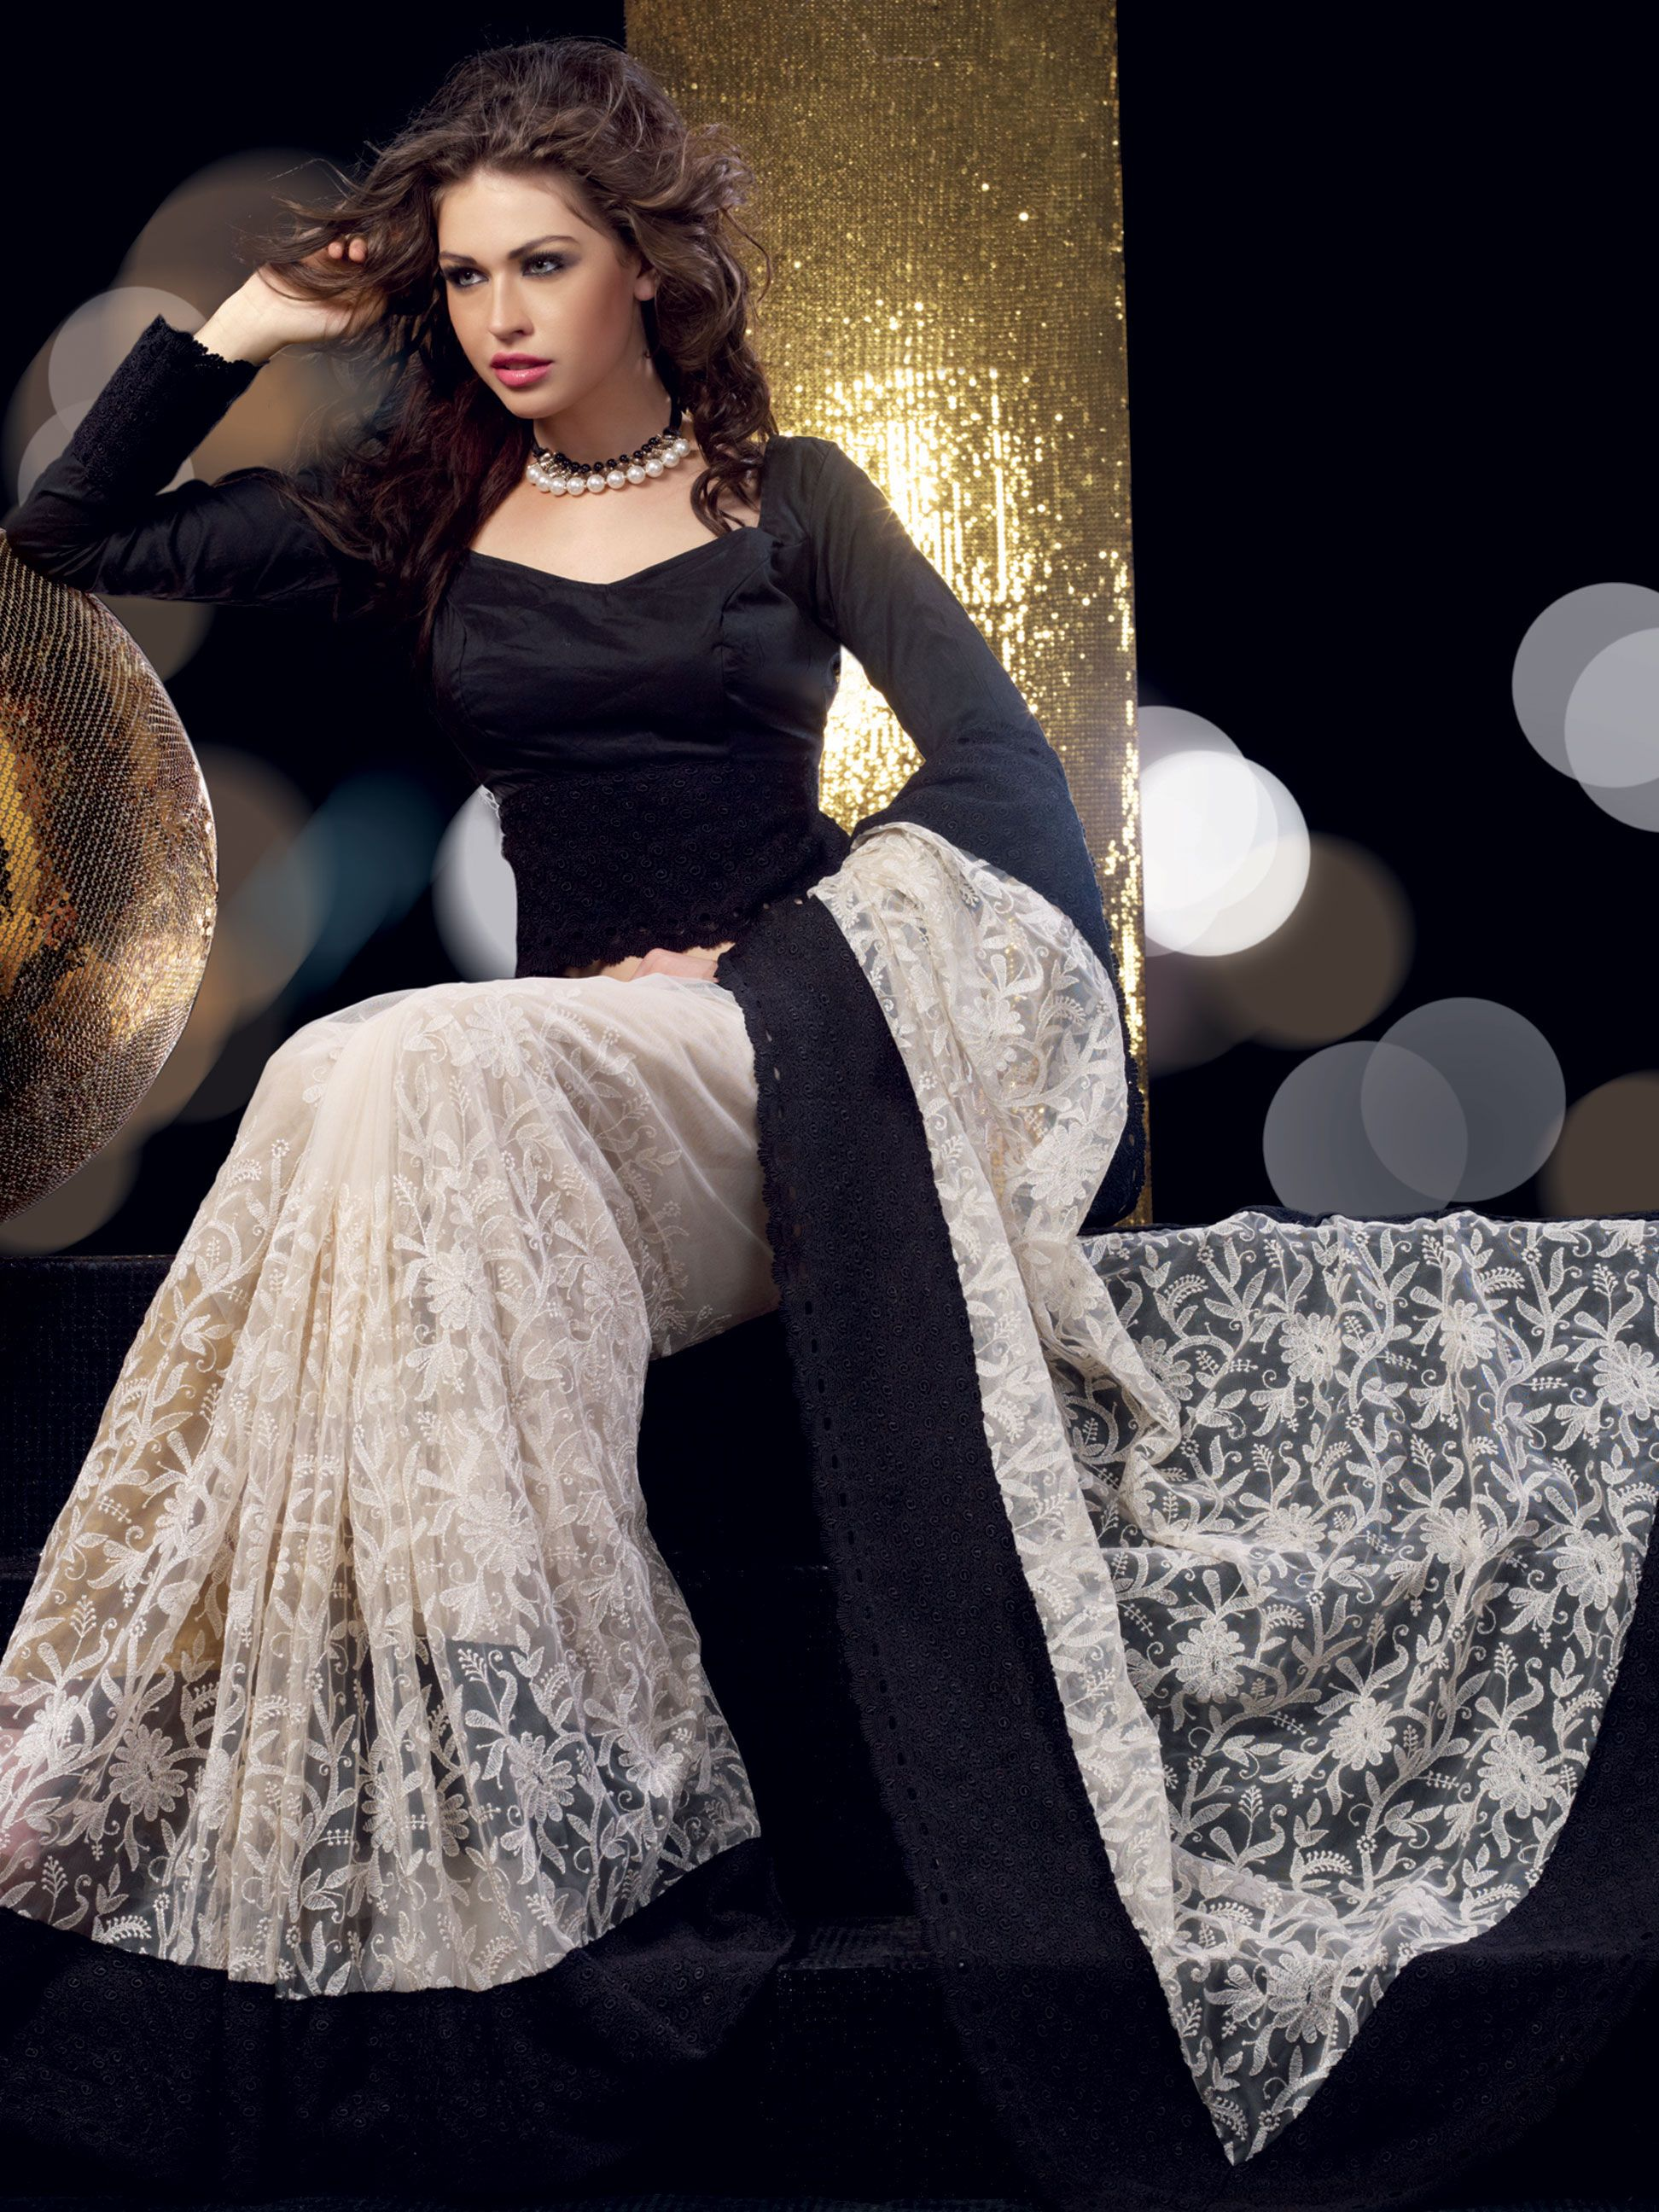 Off White and Black Net Saree with Blouse | Stylish sarees ...